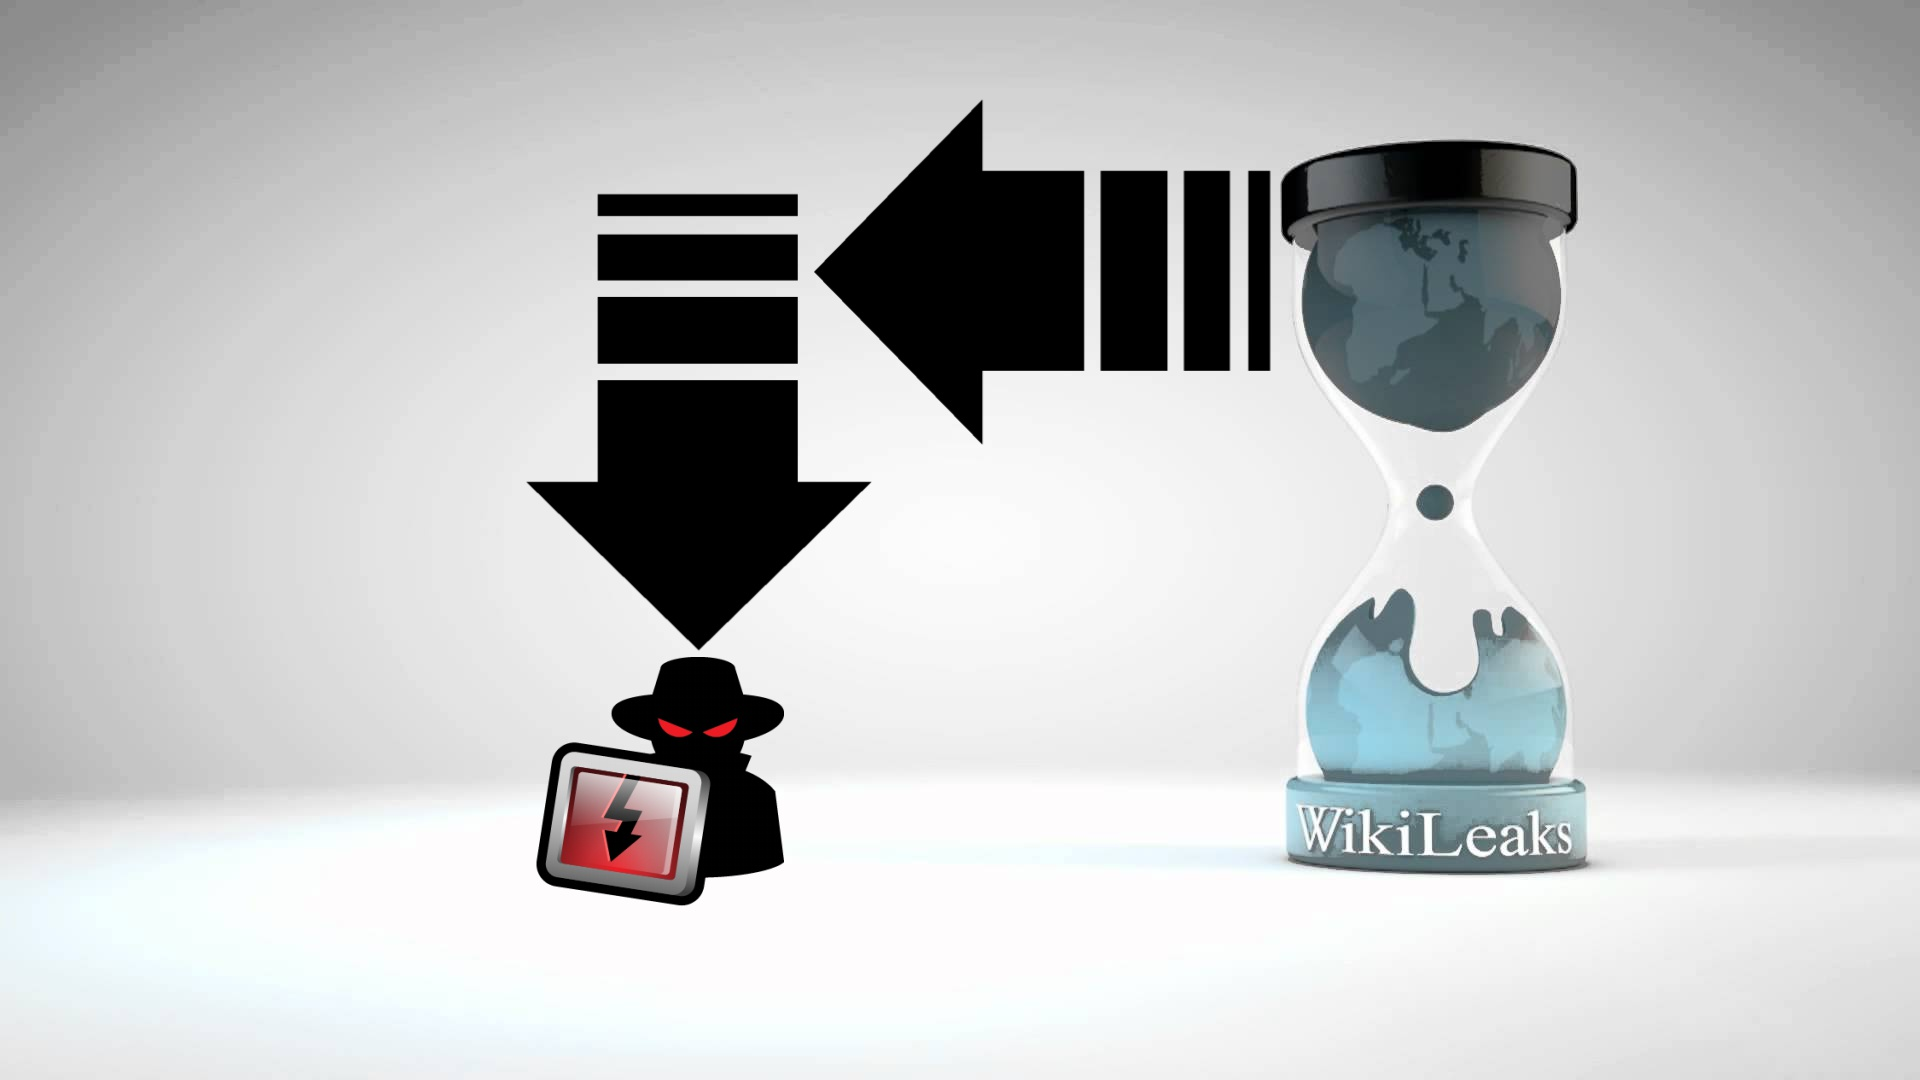 wikileaks-data-dump-contains-malware-documents-accessing-can-infect-your-system